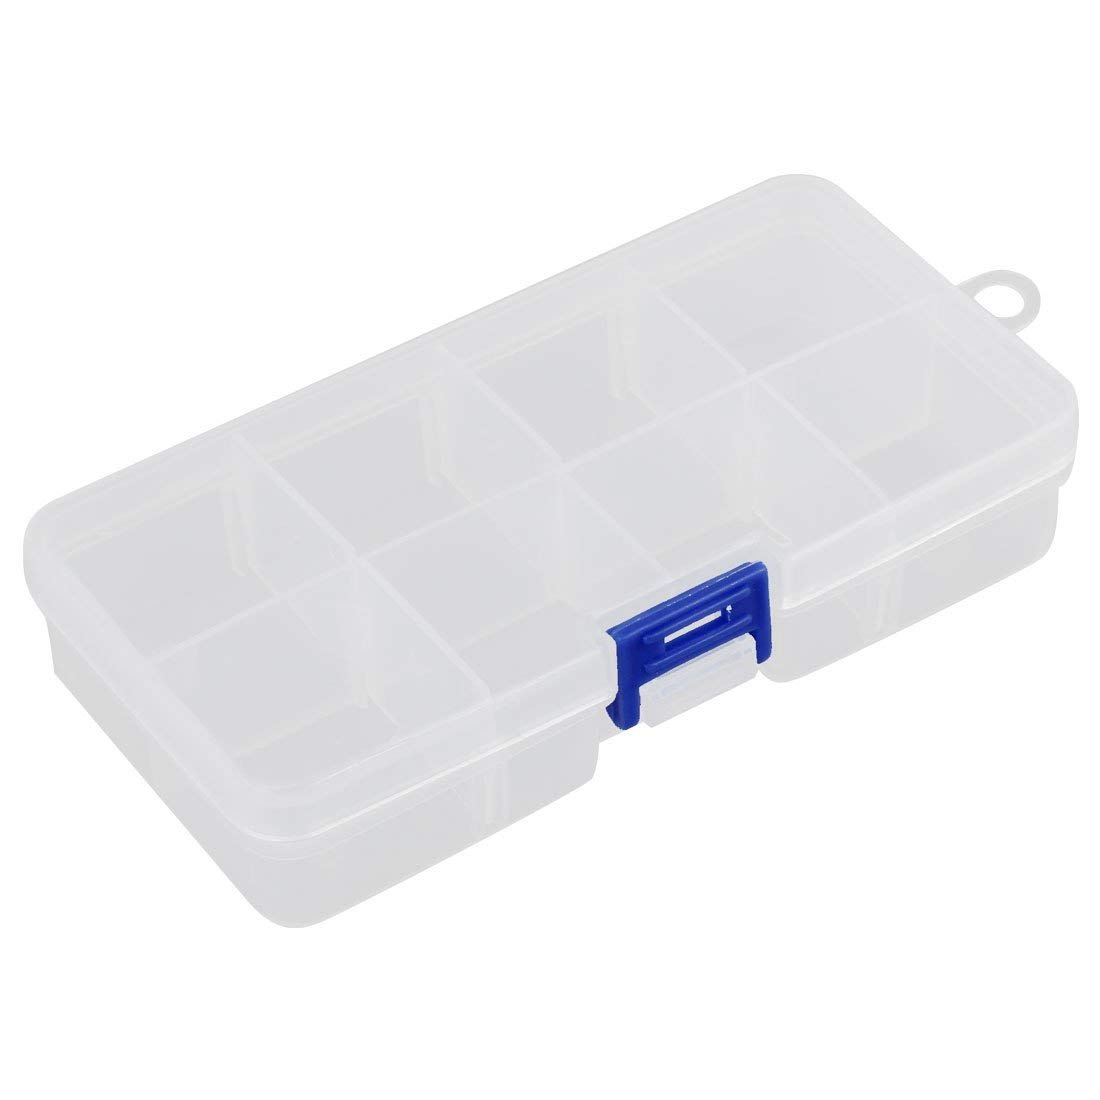 Aexit Plastic 8 Tool Organizers Separable Compartments Electronic Components Tool Boxes Storage Box